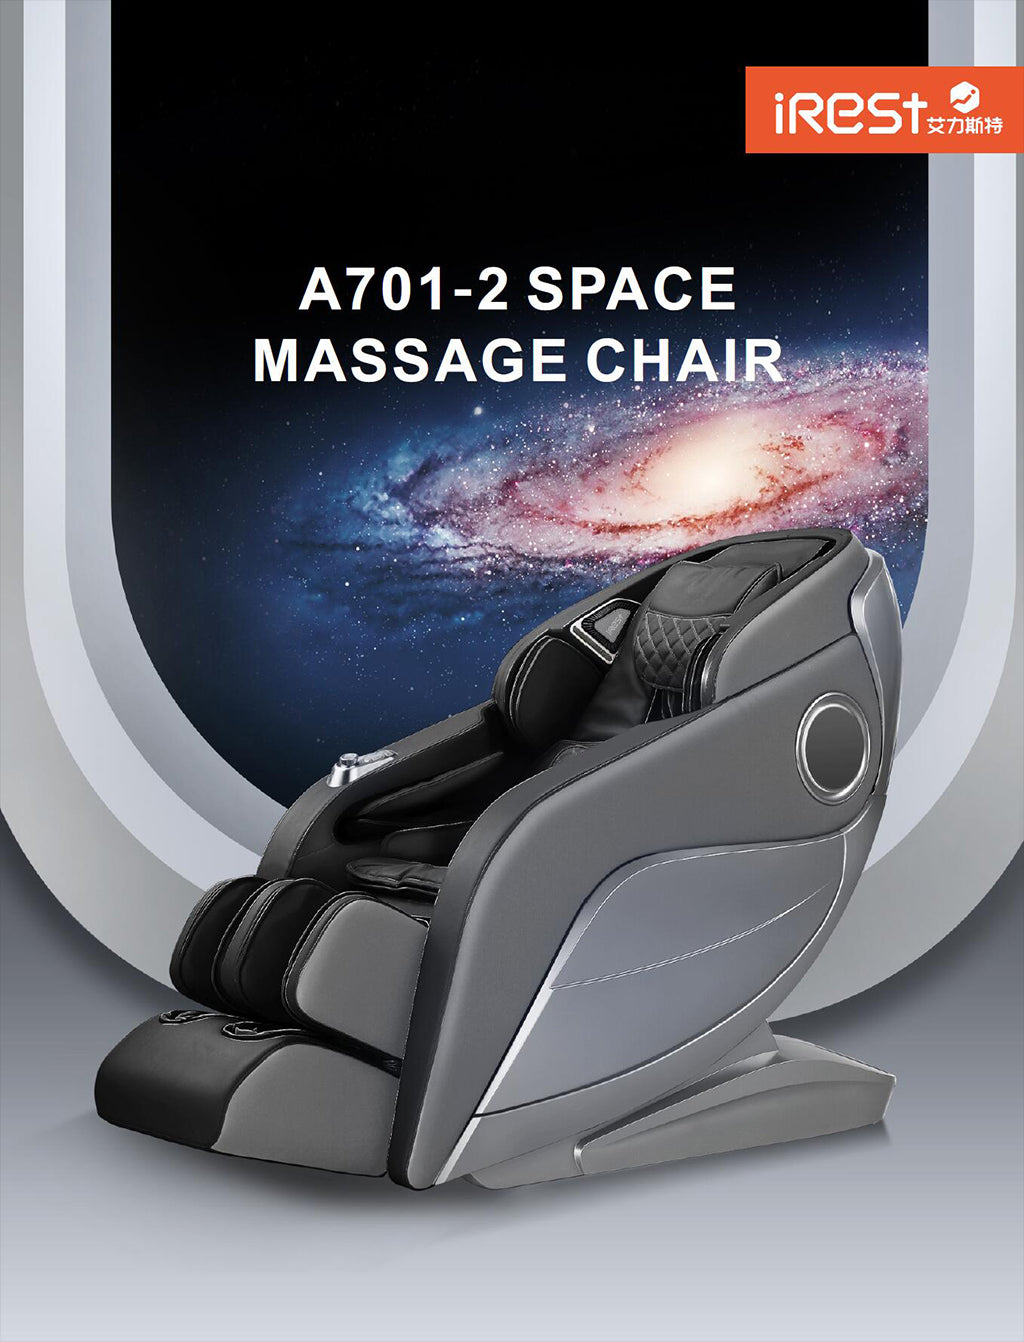 2020 Intelligent Voice Contral iRest Massage Chair SL-A701-2 Full Body Massage